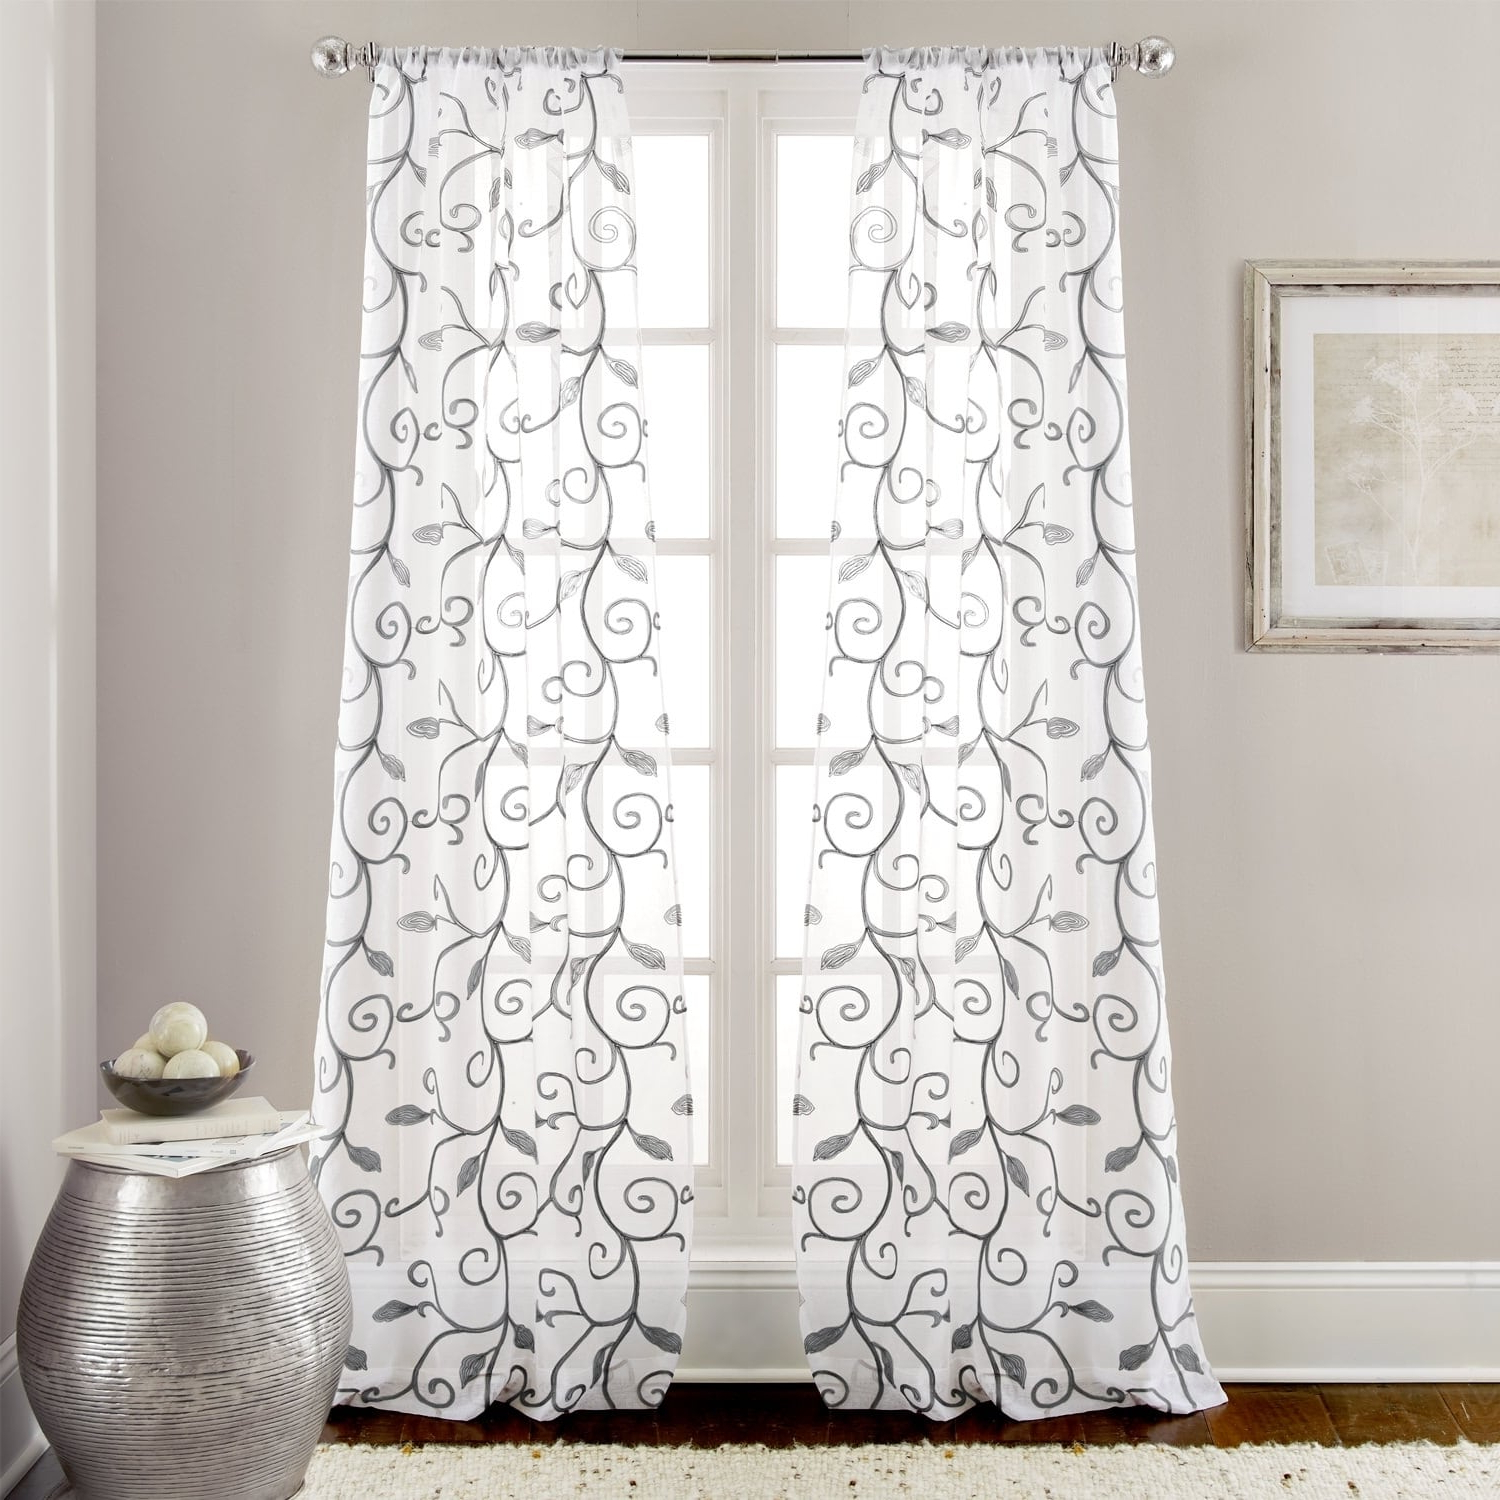 Ivory Knit Lace Bird Motif Window Curtain With Regard To Famous Amrapur Overseas Leaf Swirl Embroidered Curtain Panel Pair (View 13 of 20)